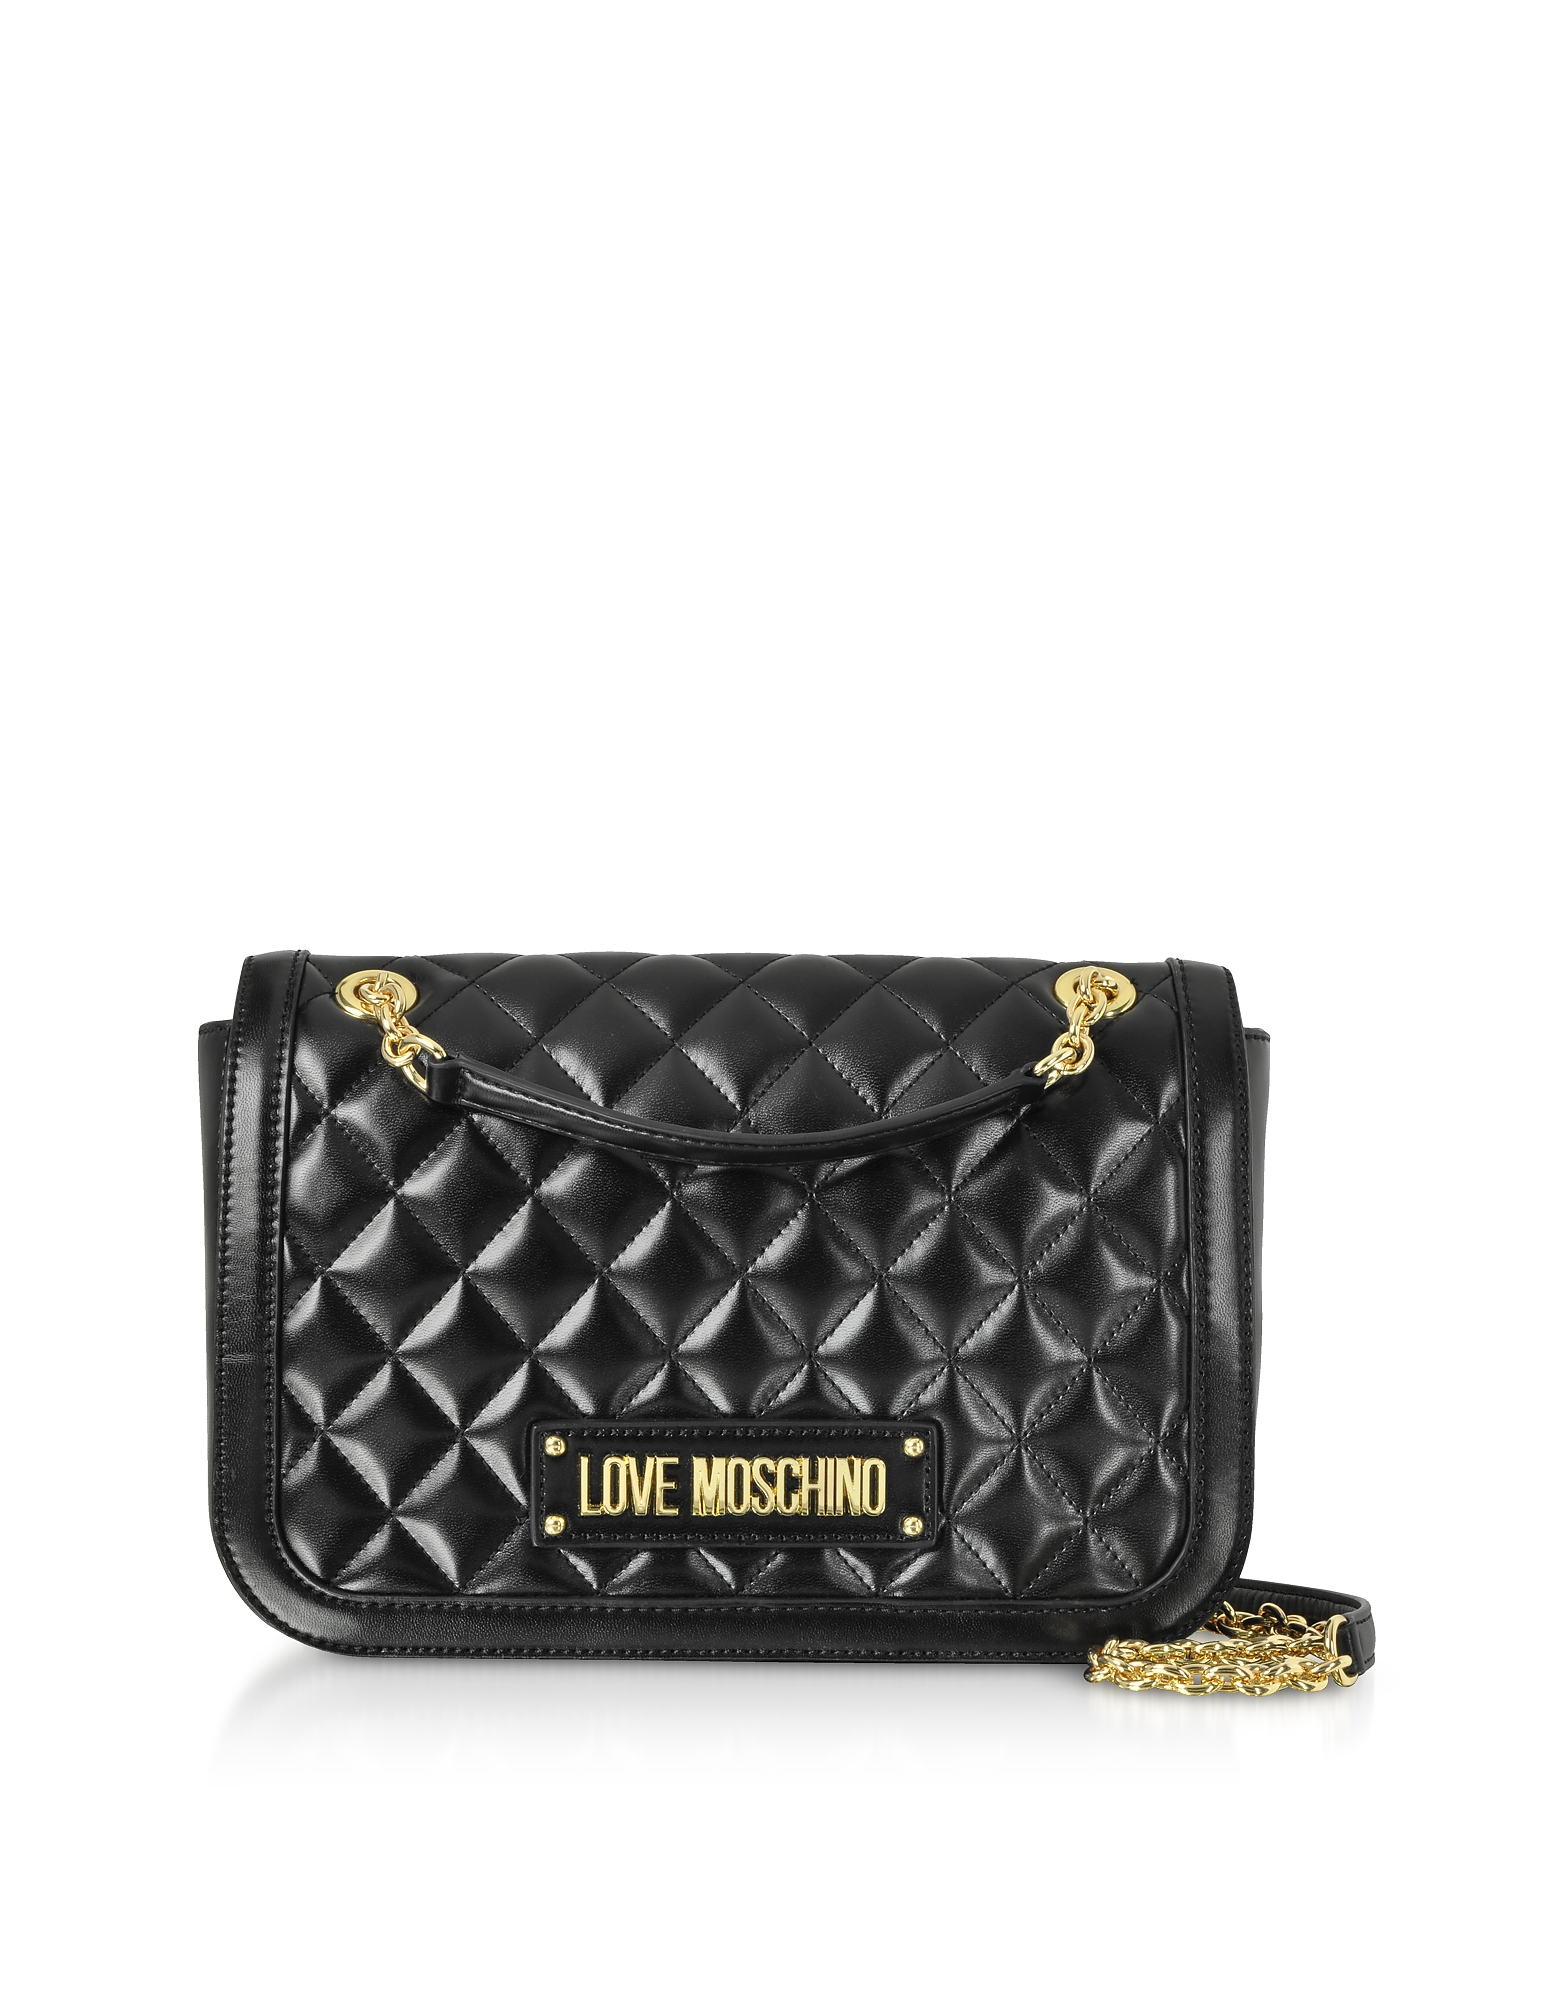 Love Moschino Handbags, New Quilted Eco Leather Crossbody